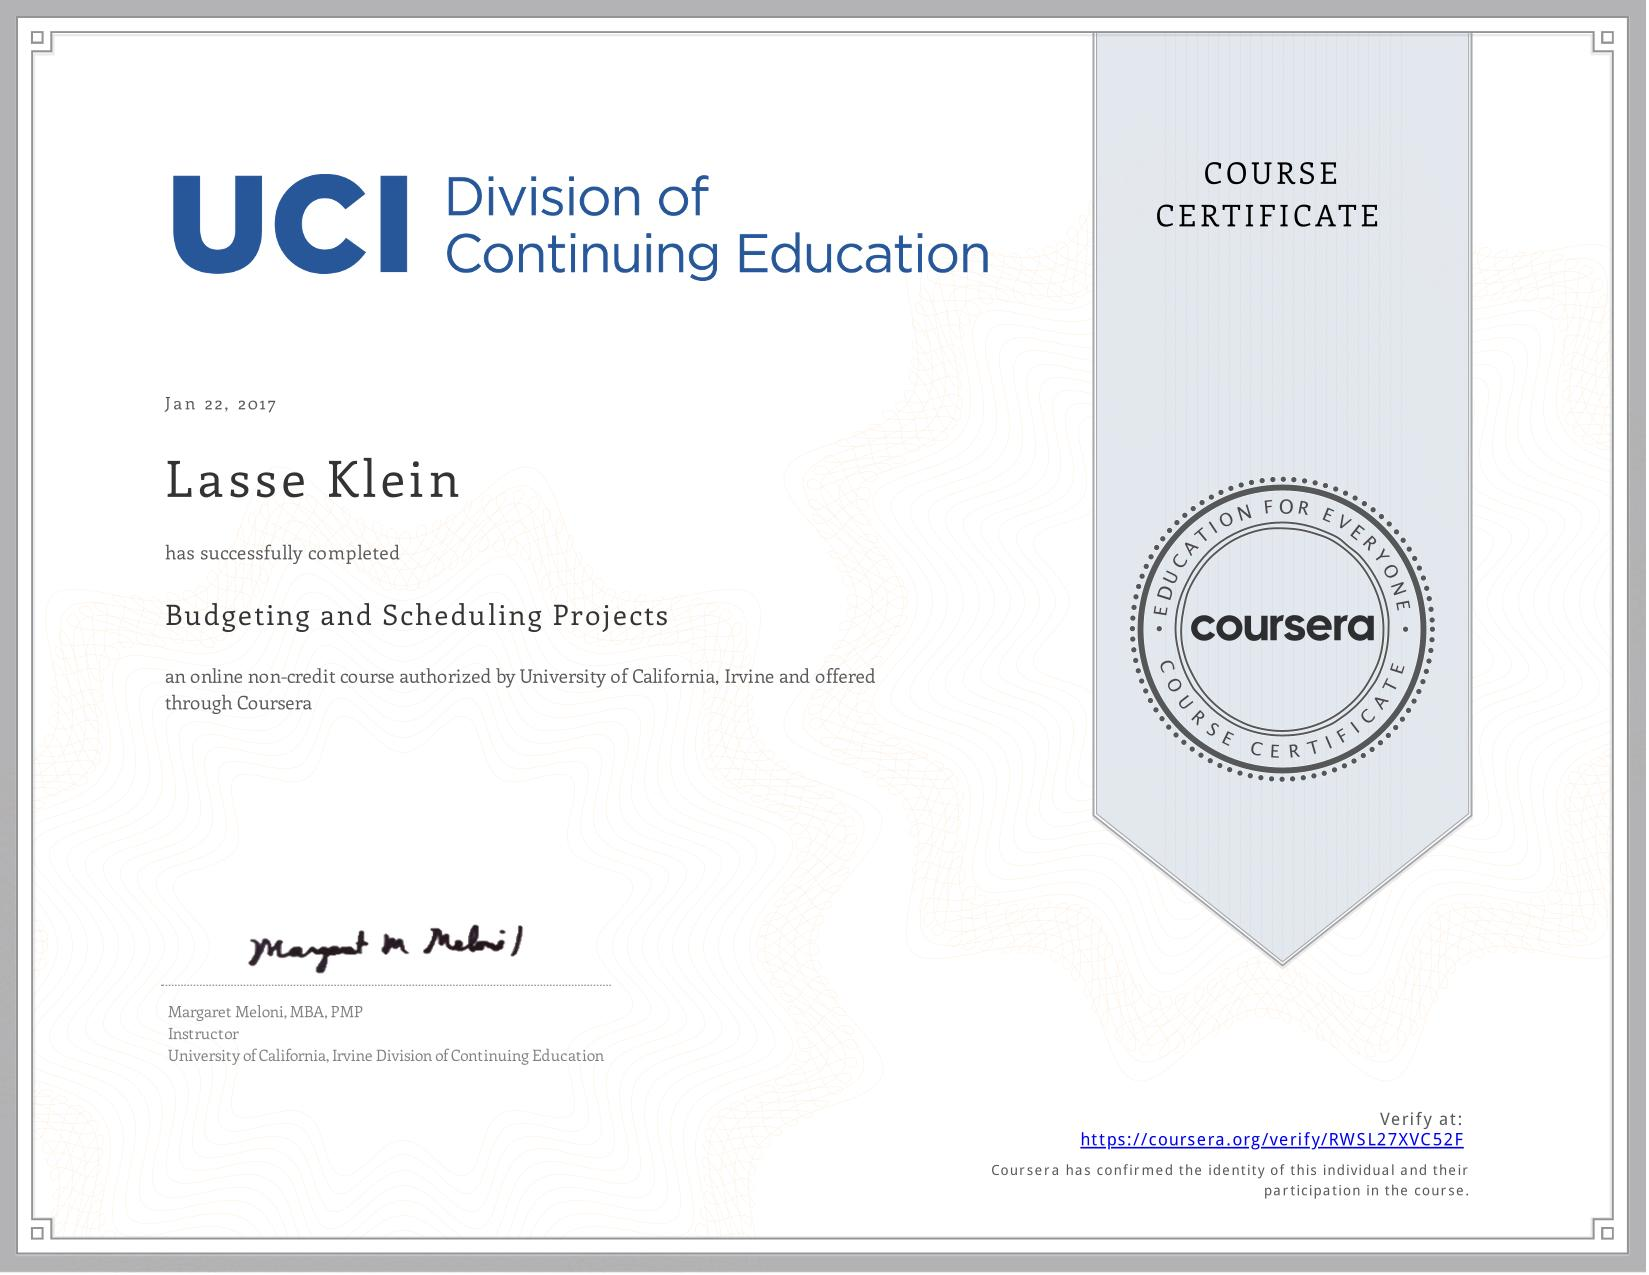 View certificate for Lasse Klein, Budgeting and Scheduling Projects, an online non-credit course authorized by University of California, Irvine and offered through Coursera